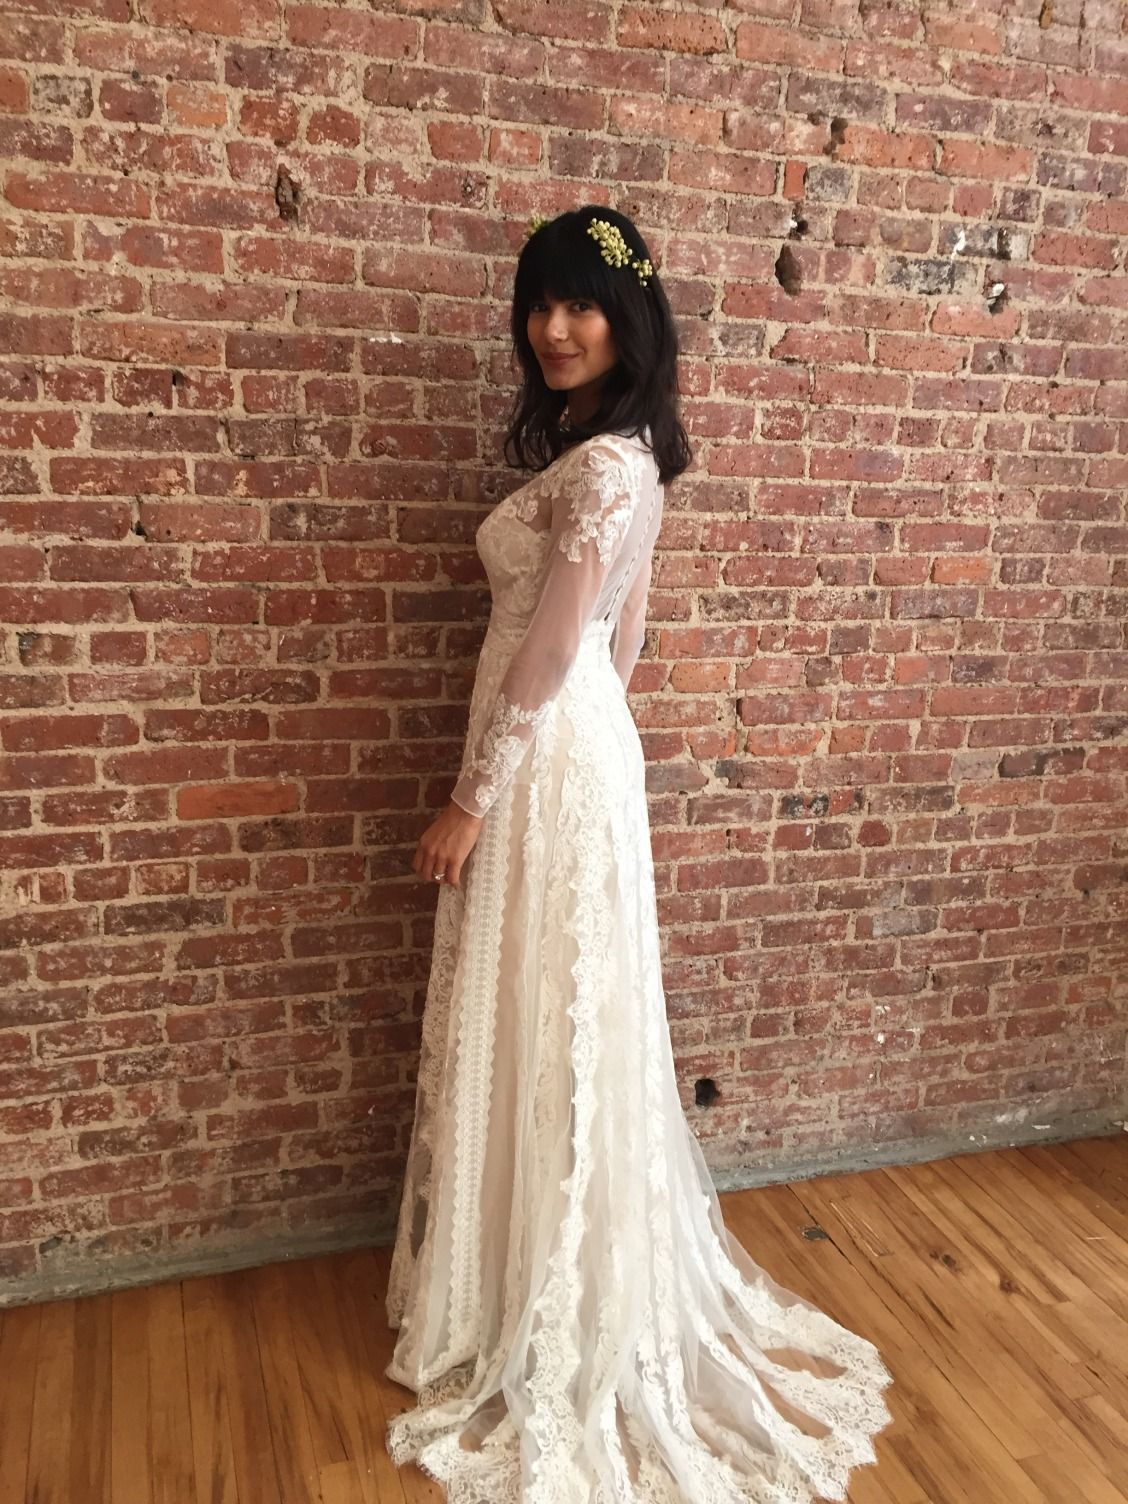 For The Effortless Bohemian Bride This Long Sleeve V Neckline Linear Lace Sheath Wedding Dr Wedding Dresses Lace Davids Bridal Wedding Dresses Wedding Dresses [ 1504 x 1128 Pixel ]